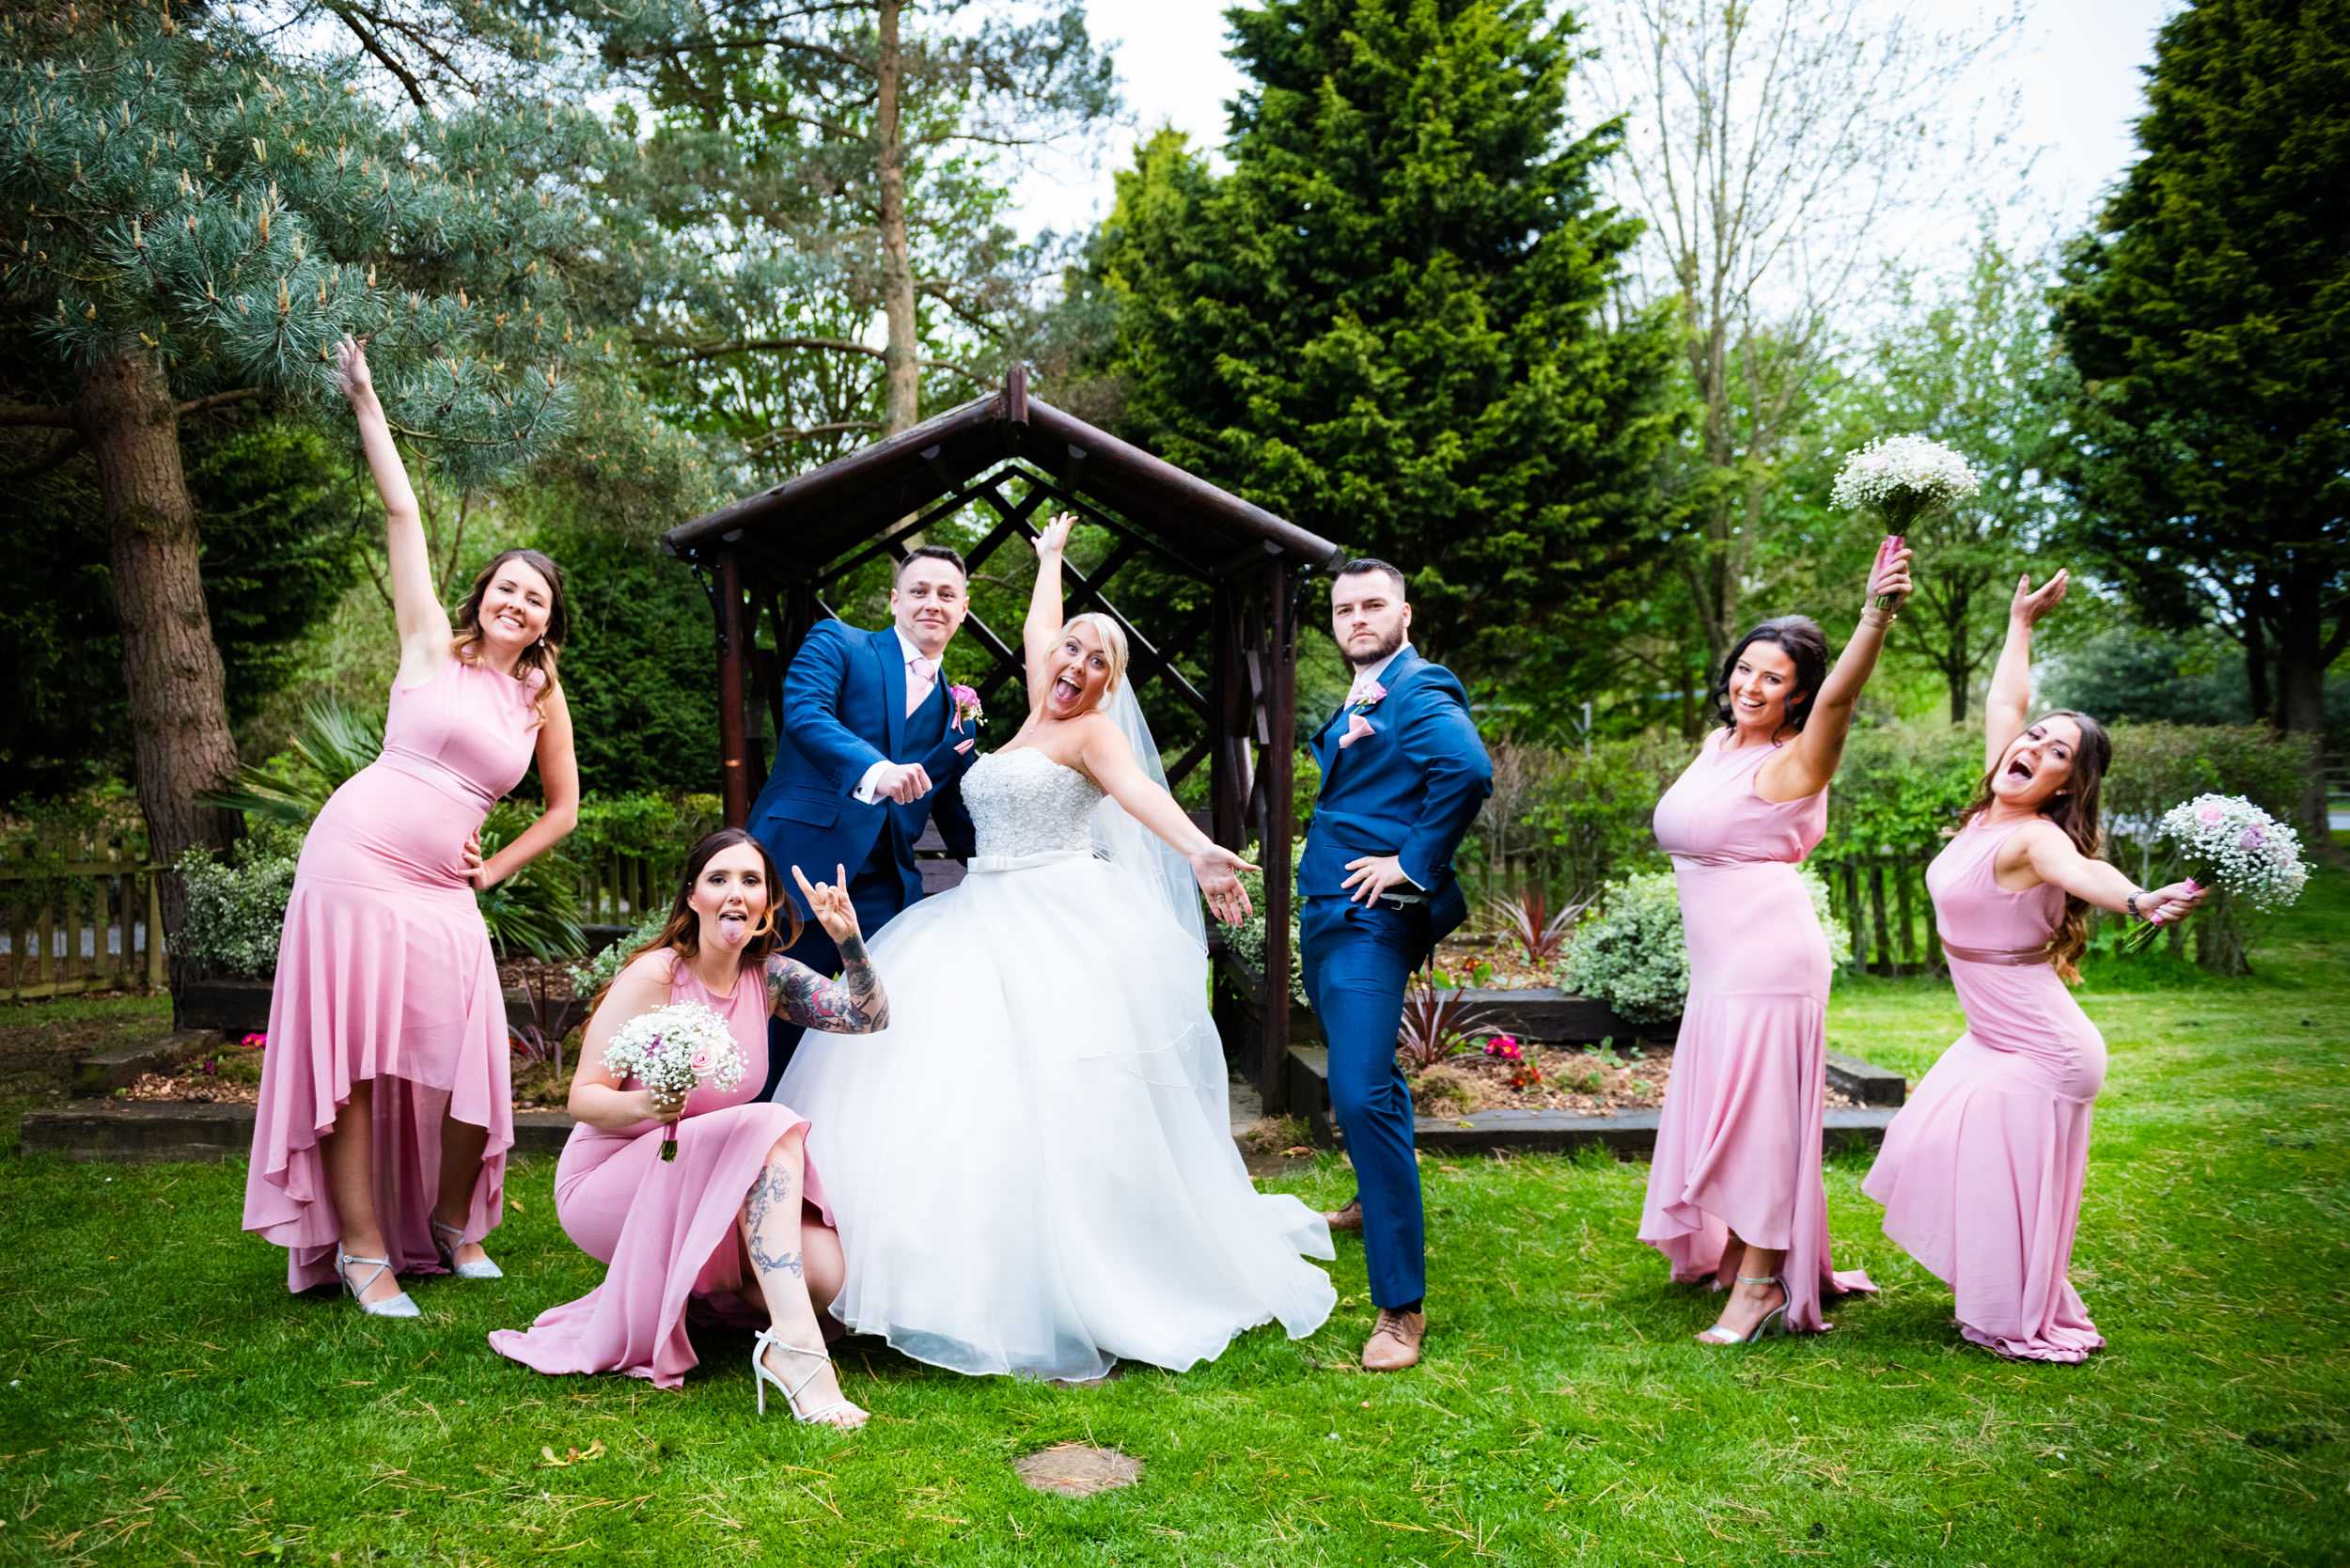 Bridal Party throwing silly poses in the gardens of the Abbey Hotel, Redditch